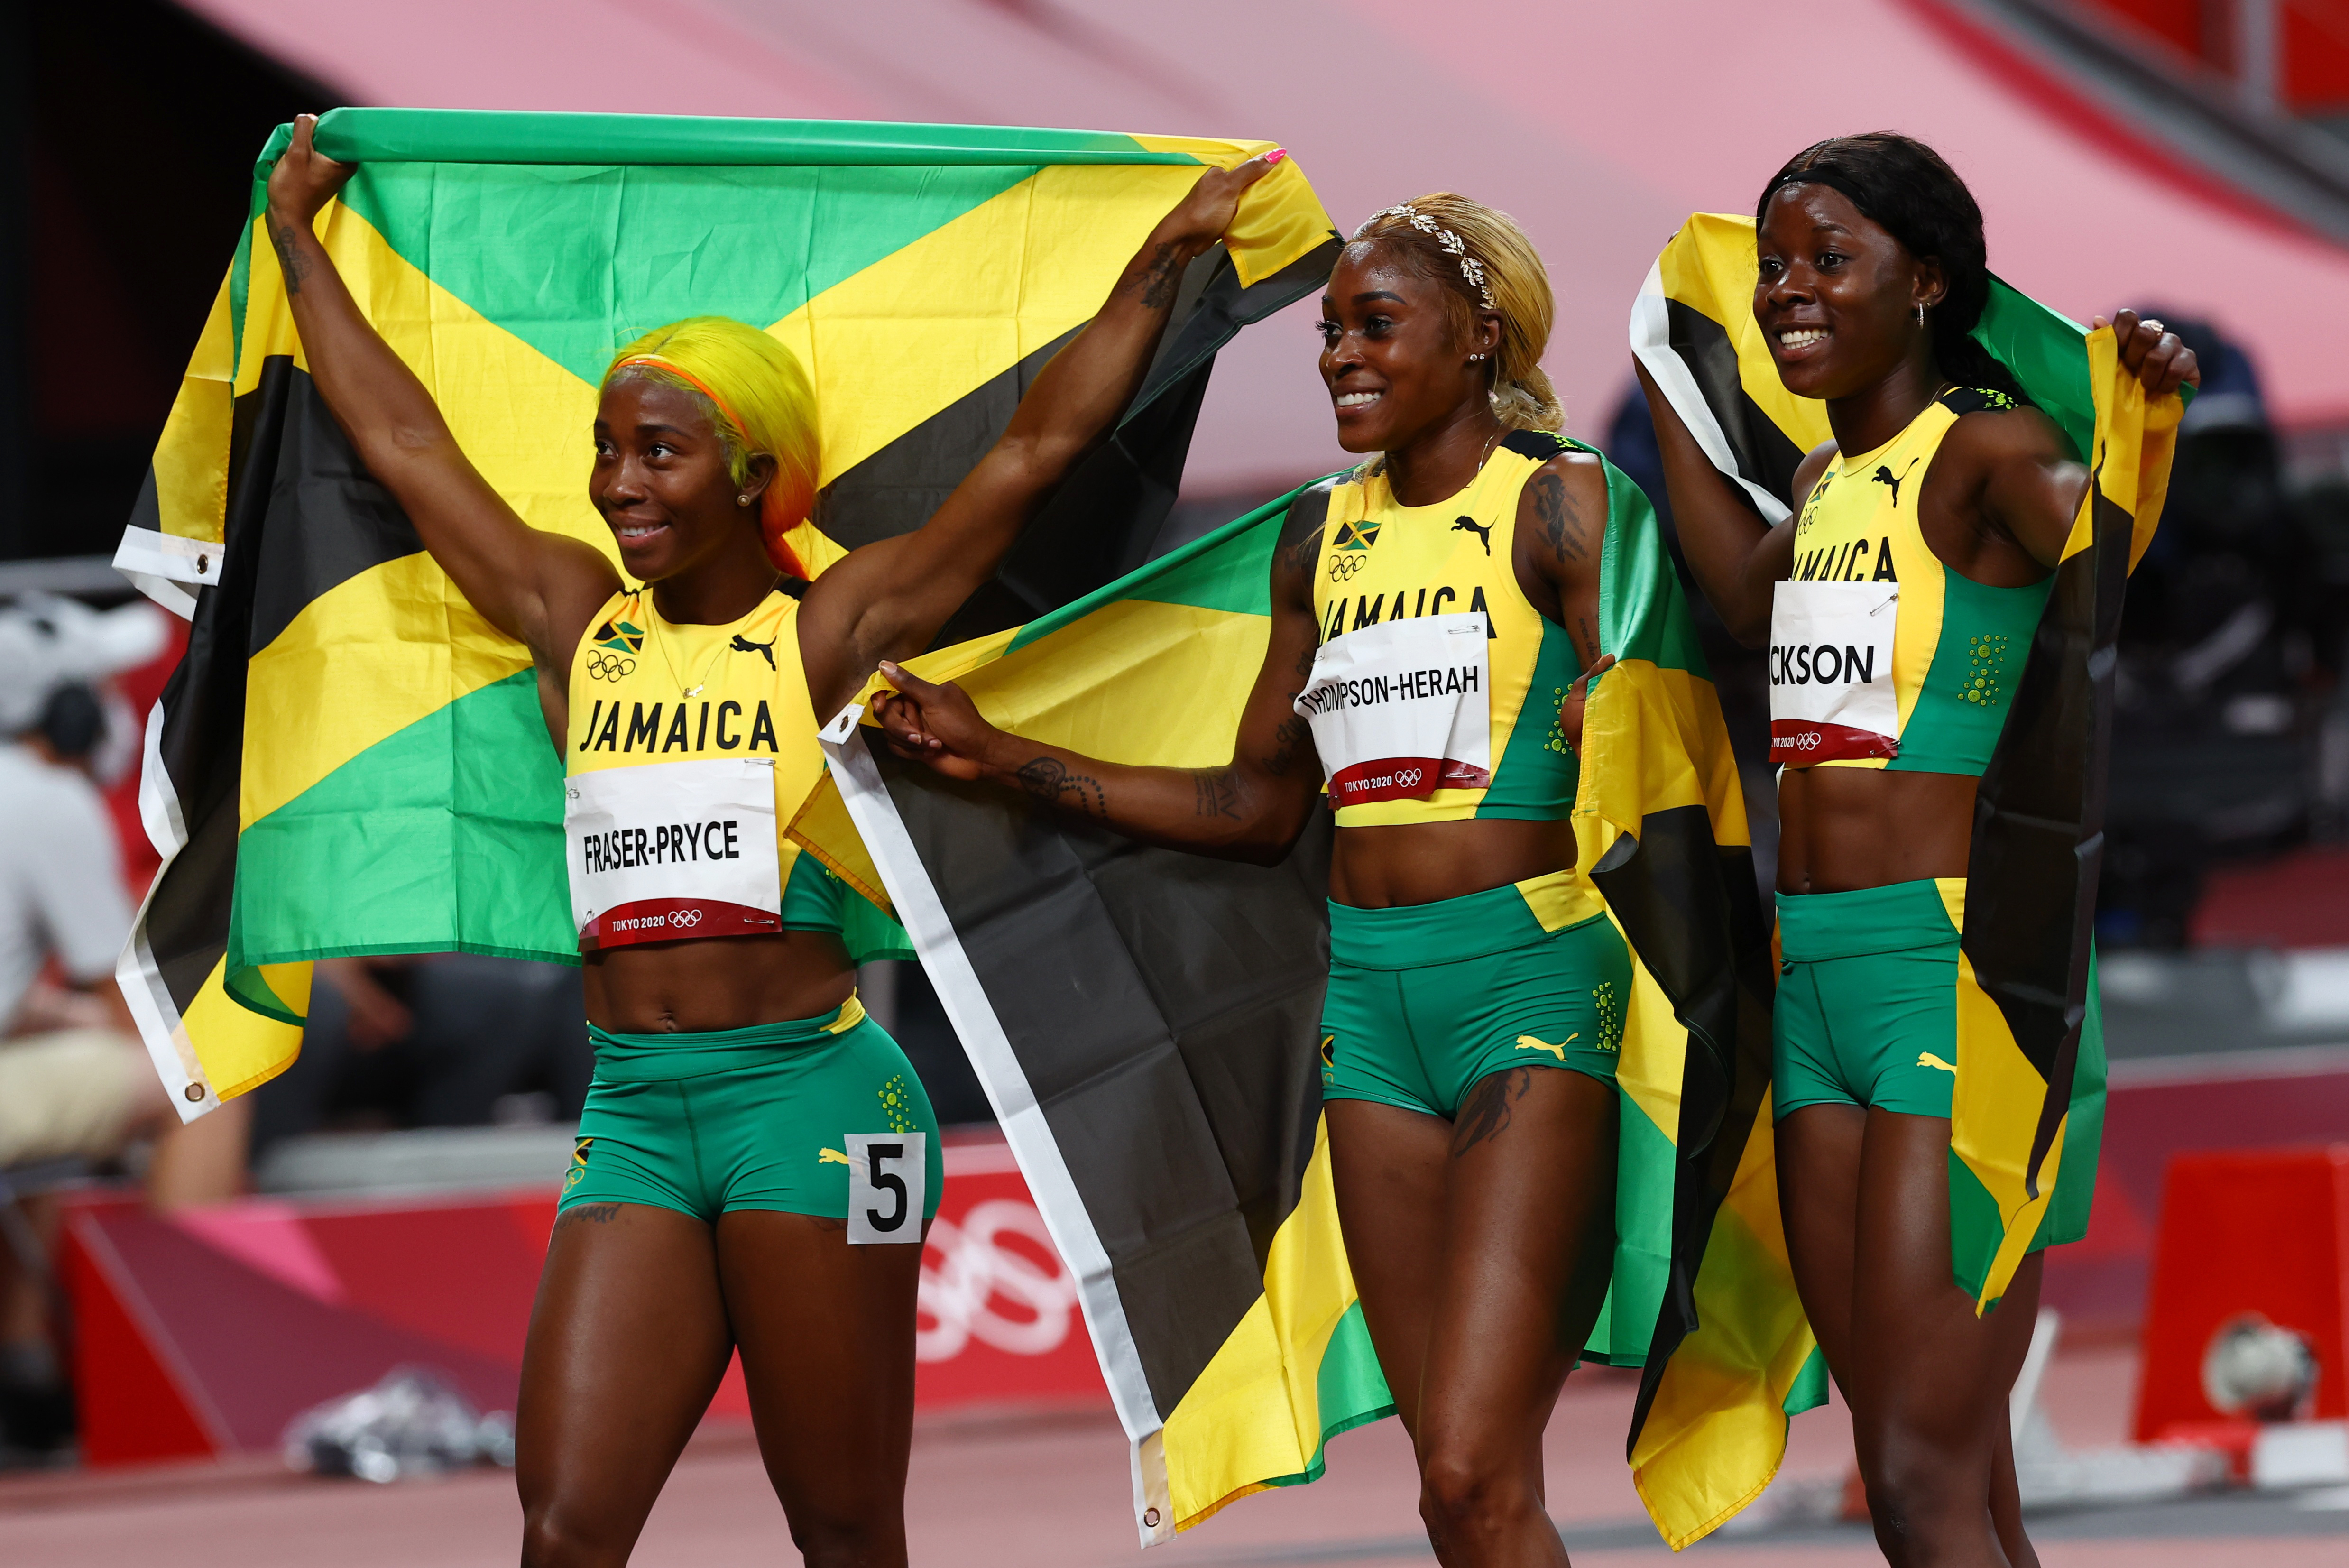 Tokyo 2020 Olympics - Athletics - Women's 100m - Final - OLS - Olympic Stadium, Tokyo, Japan - July 31, 2021. Elaine Thompson-Herah of Jamaica celebrates winning the gold medal next to Shelly-Ann Fraser-Pryce of Jamaica who won the silver medal and Shericka Jackson of Jamaica who won the bronze medal REUTERS/Kai Pfaffenbach